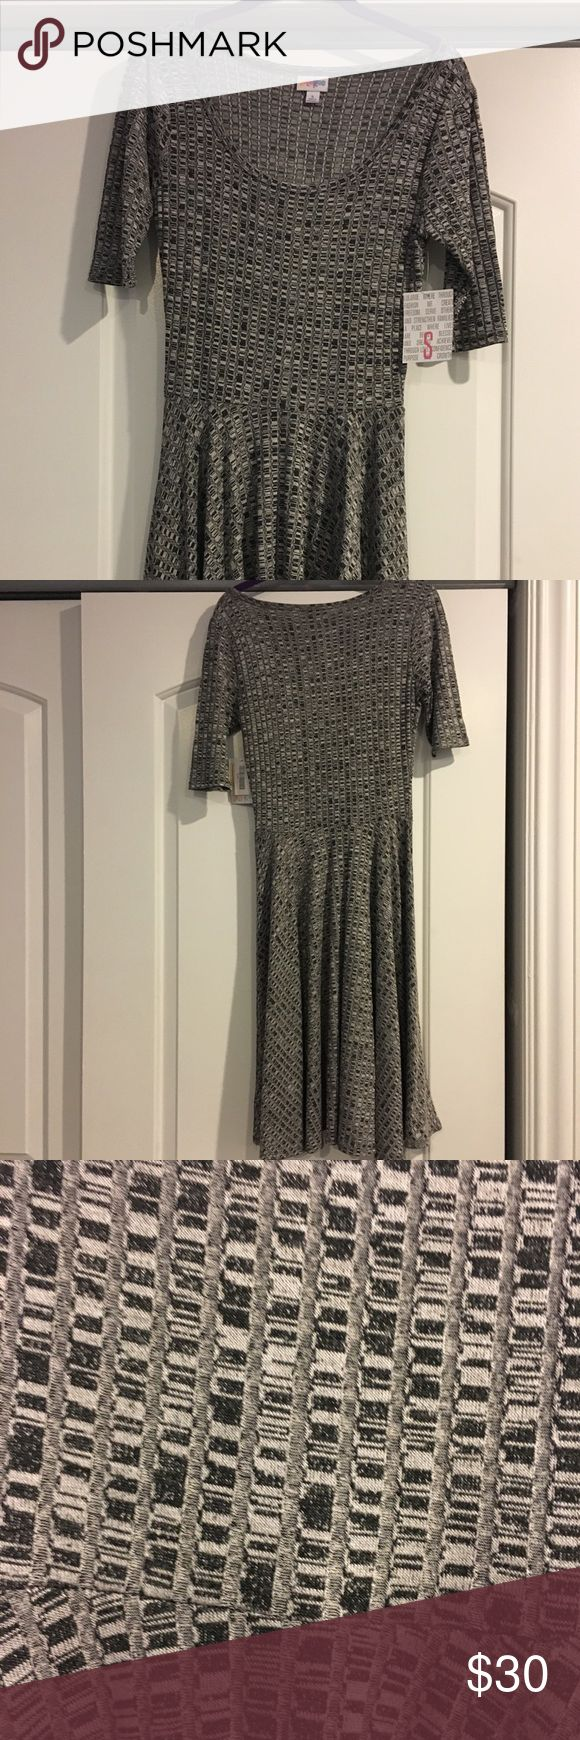 NWT LuLaRoe Nicole Dress NWT LuLaRoe Nicole dress, size small. Gray, silver and white, ribbed and stretchy.  Perfect for work or for a night out! LuLaRoe Dresses